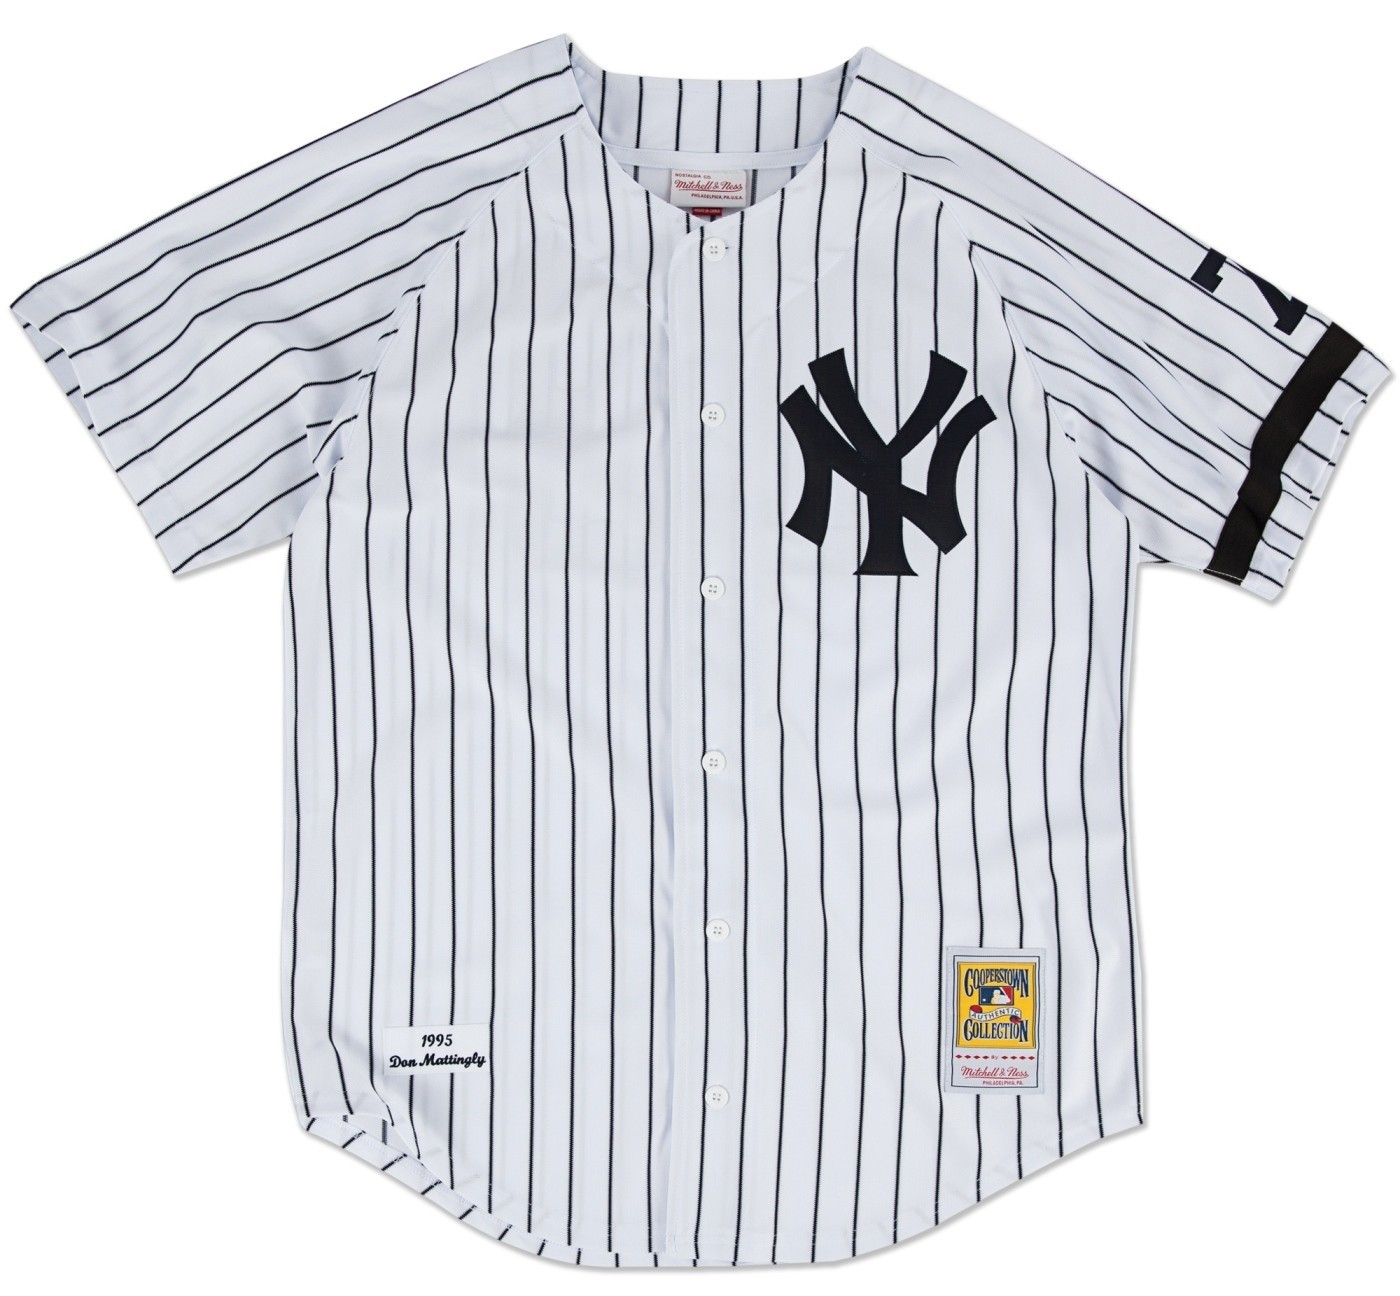 4d200aa24 ... buy don mattingly new york yankees mitchell ness authentic mlb 1995  home jersey 76f94 cc1e6